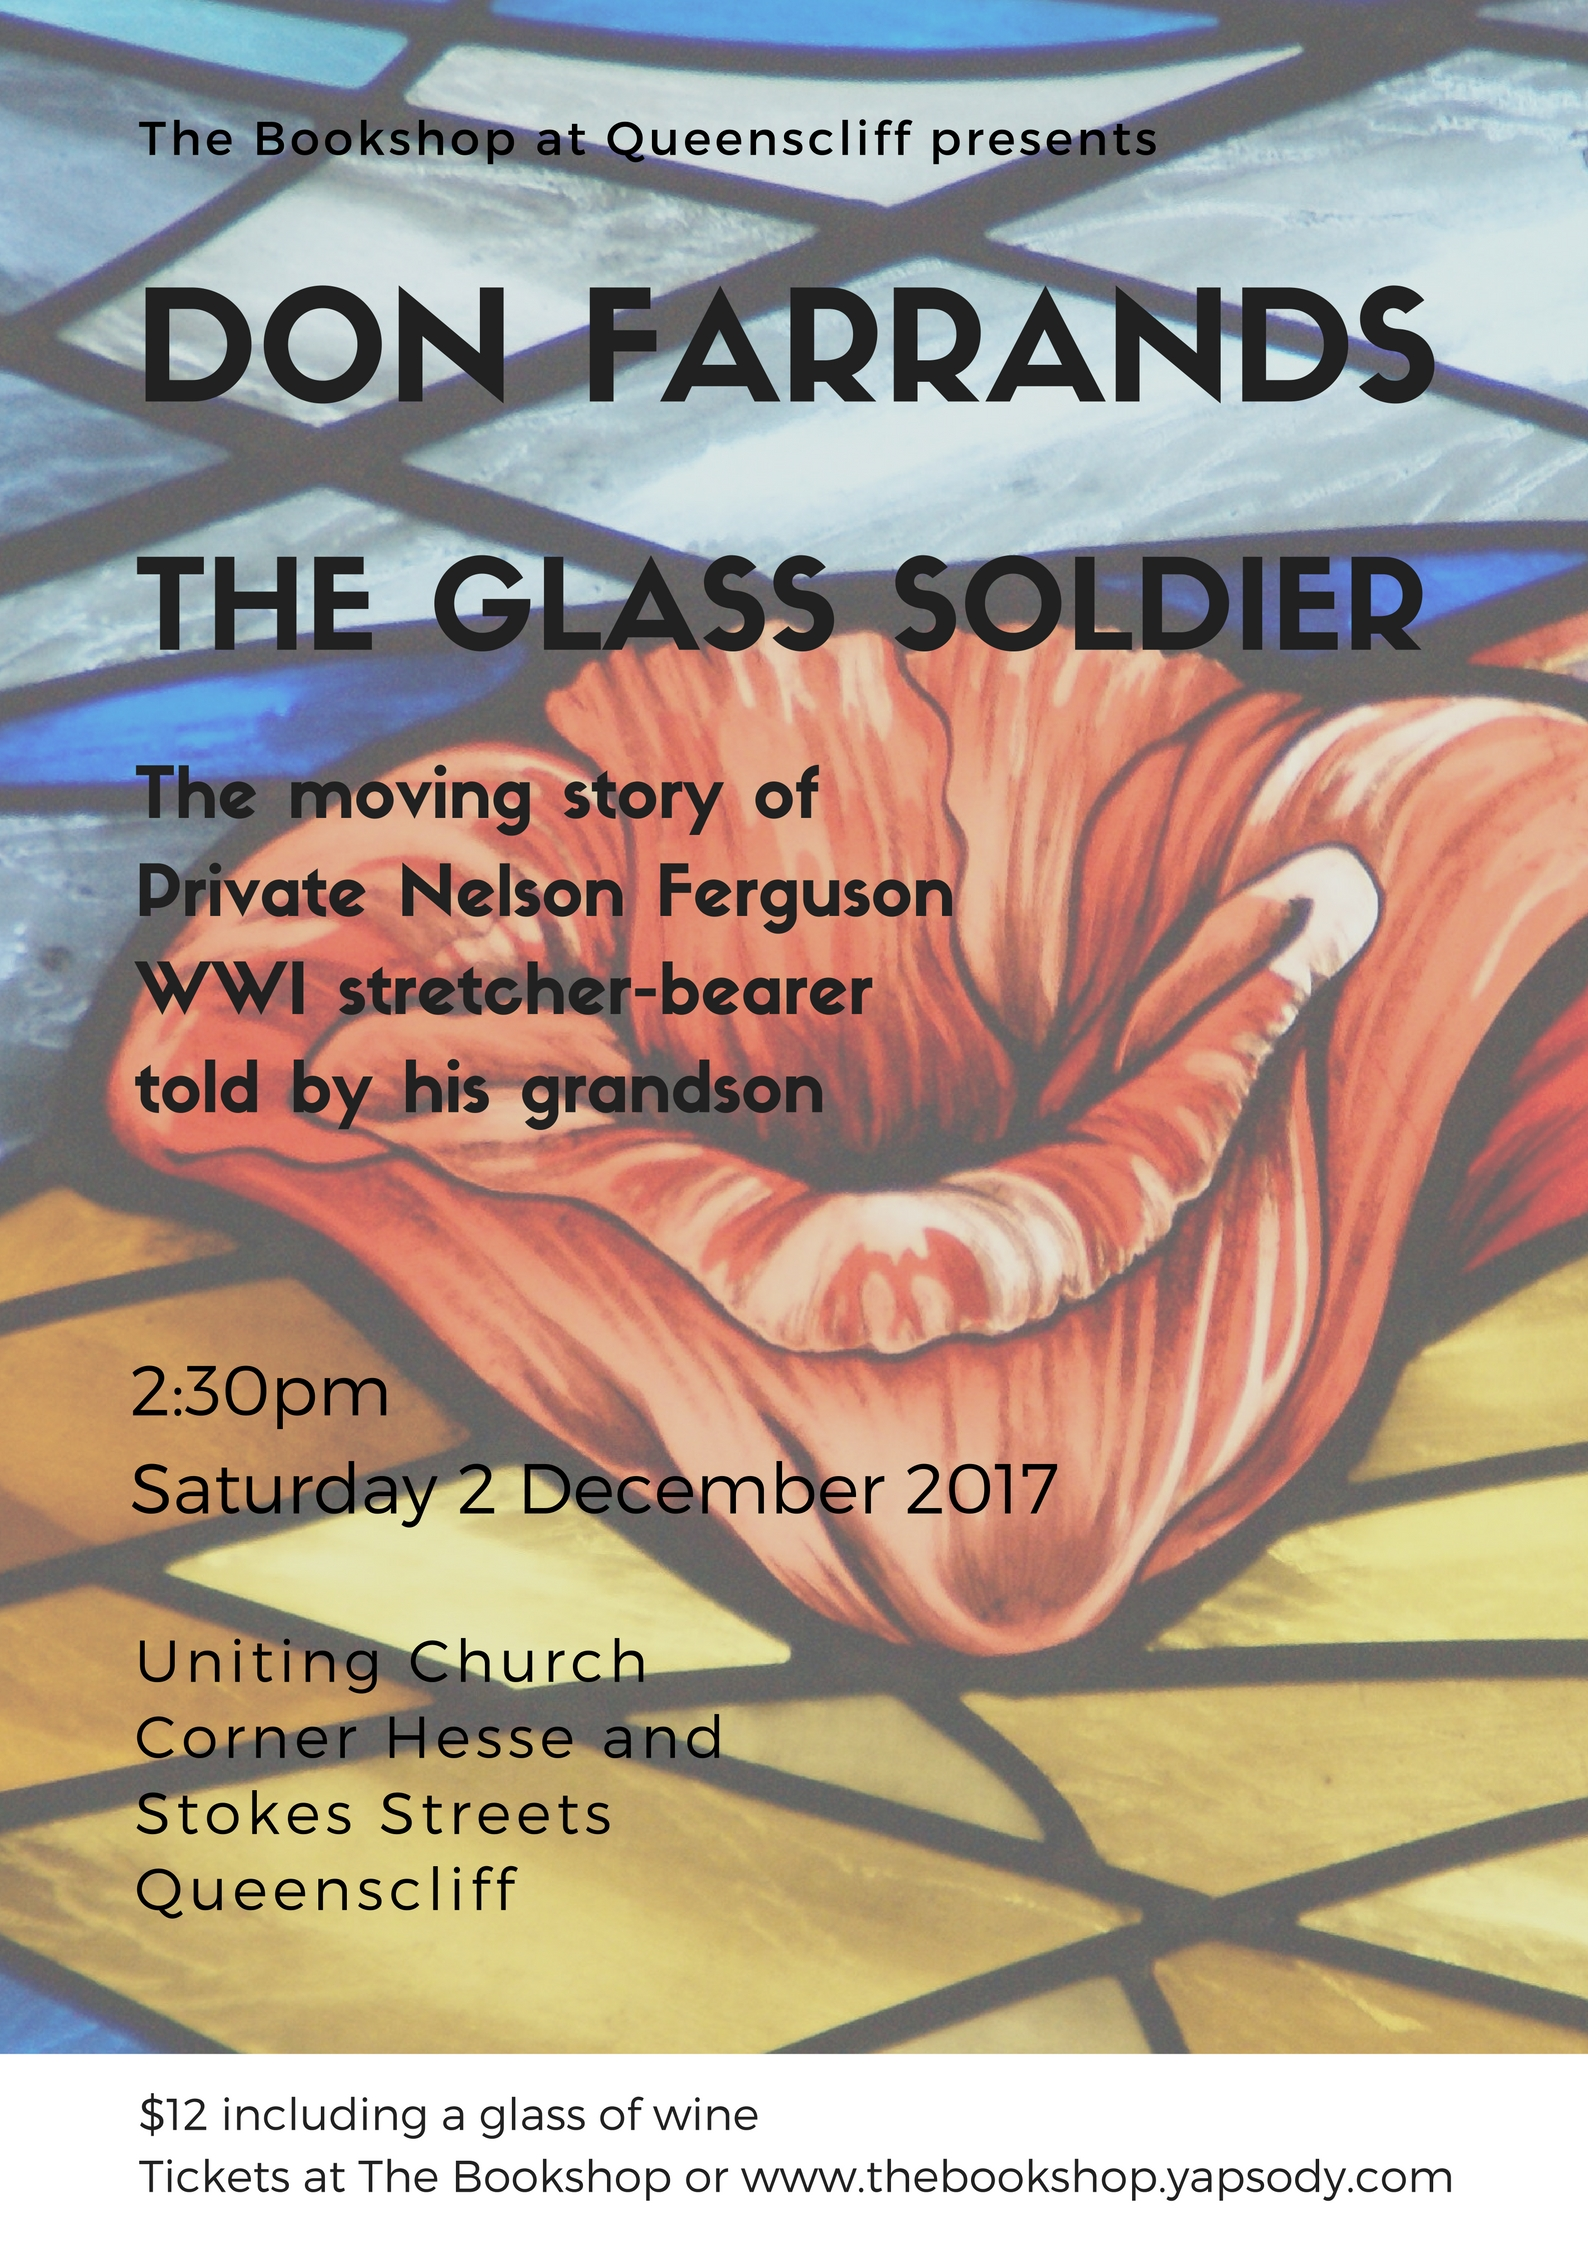 The Glass Soldier with Don Farrands